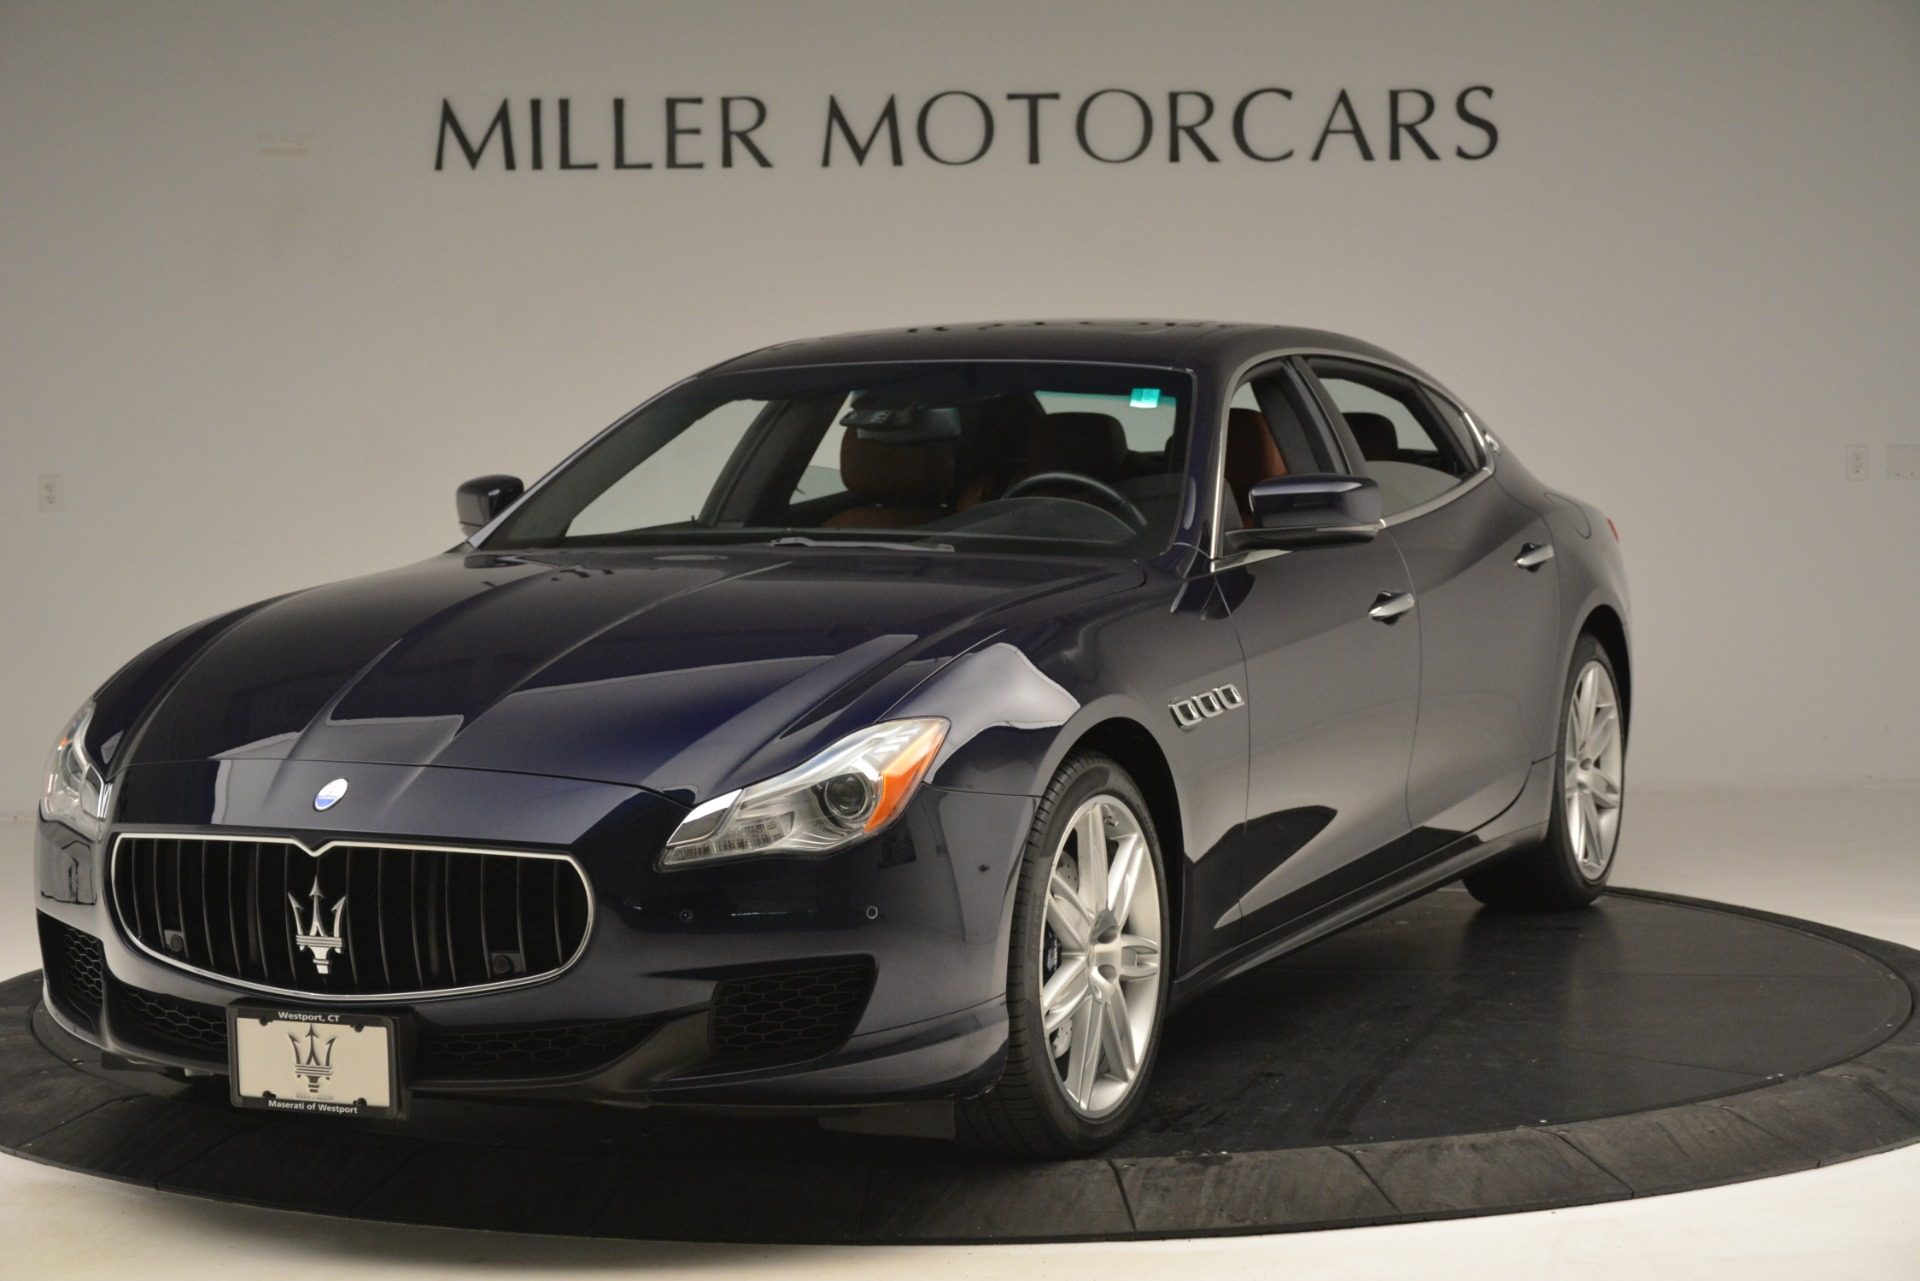 Used 2015 Maserati Quattroporte S Q4 for sale Sold at Bugatti of Greenwich in Greenwich CT 06830 1